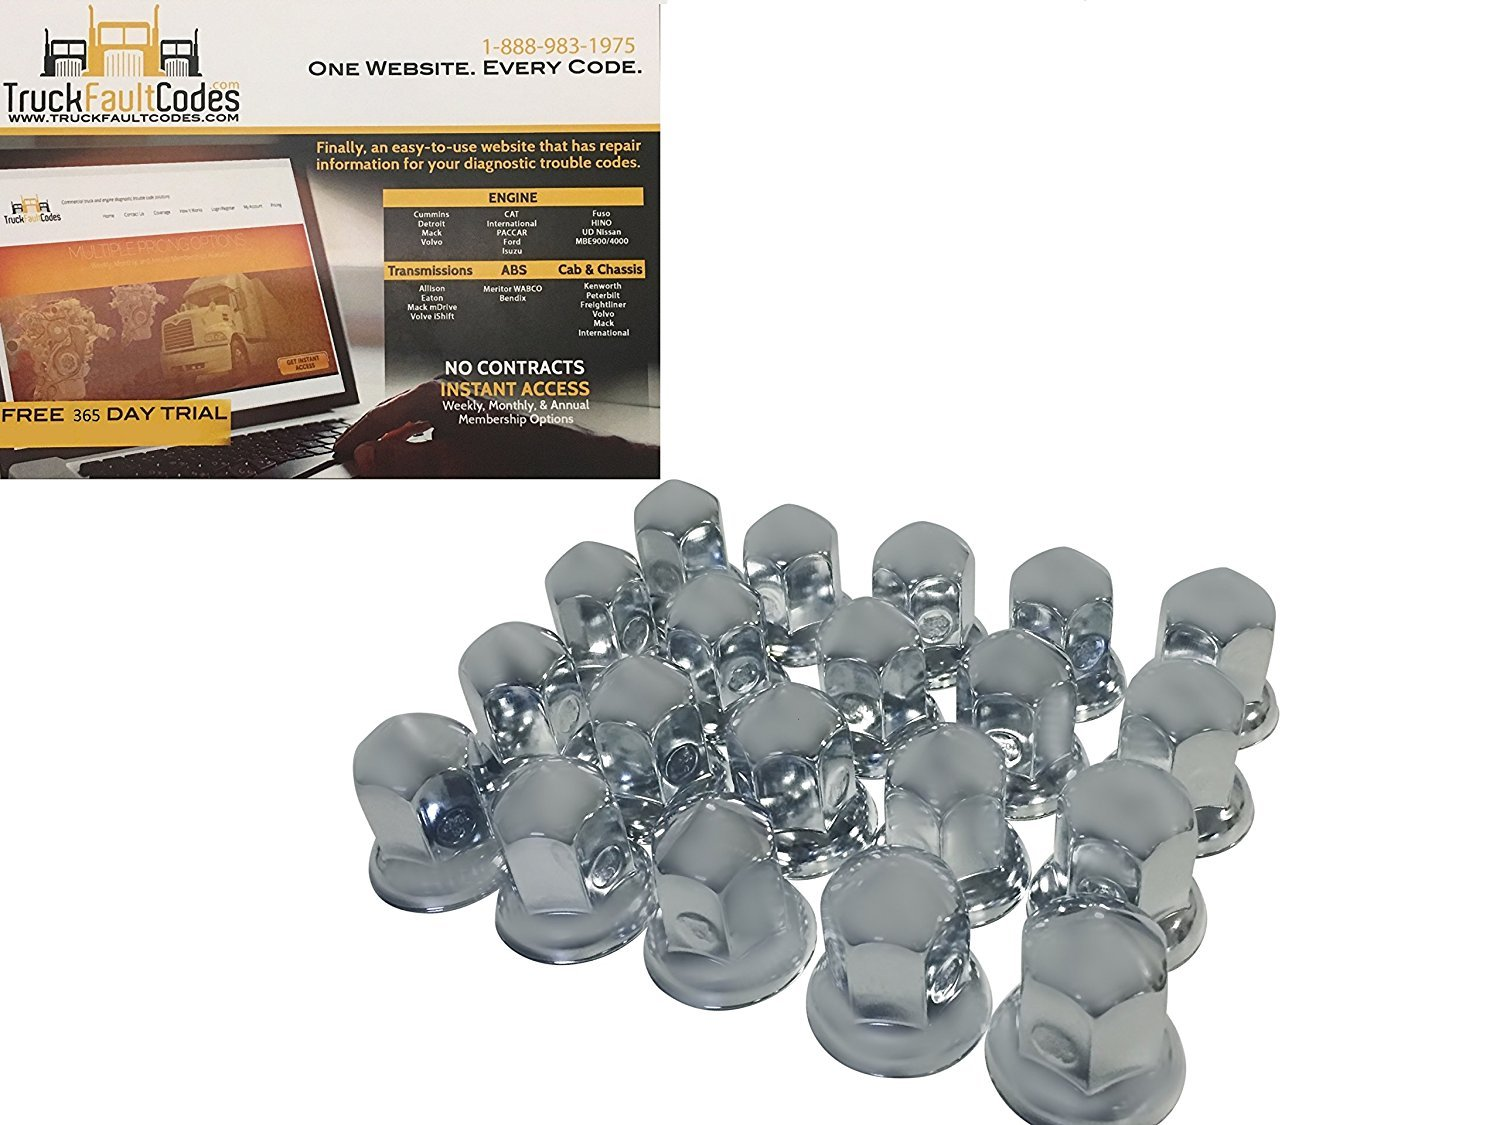 Diesel Laptops 20 Pack of 33mm x 2-5/8 Chrome Standard Stainless Push On Nut Cover for Commercial Heavy Semi Trucks with 12-month Membership to TruckFaultCodes